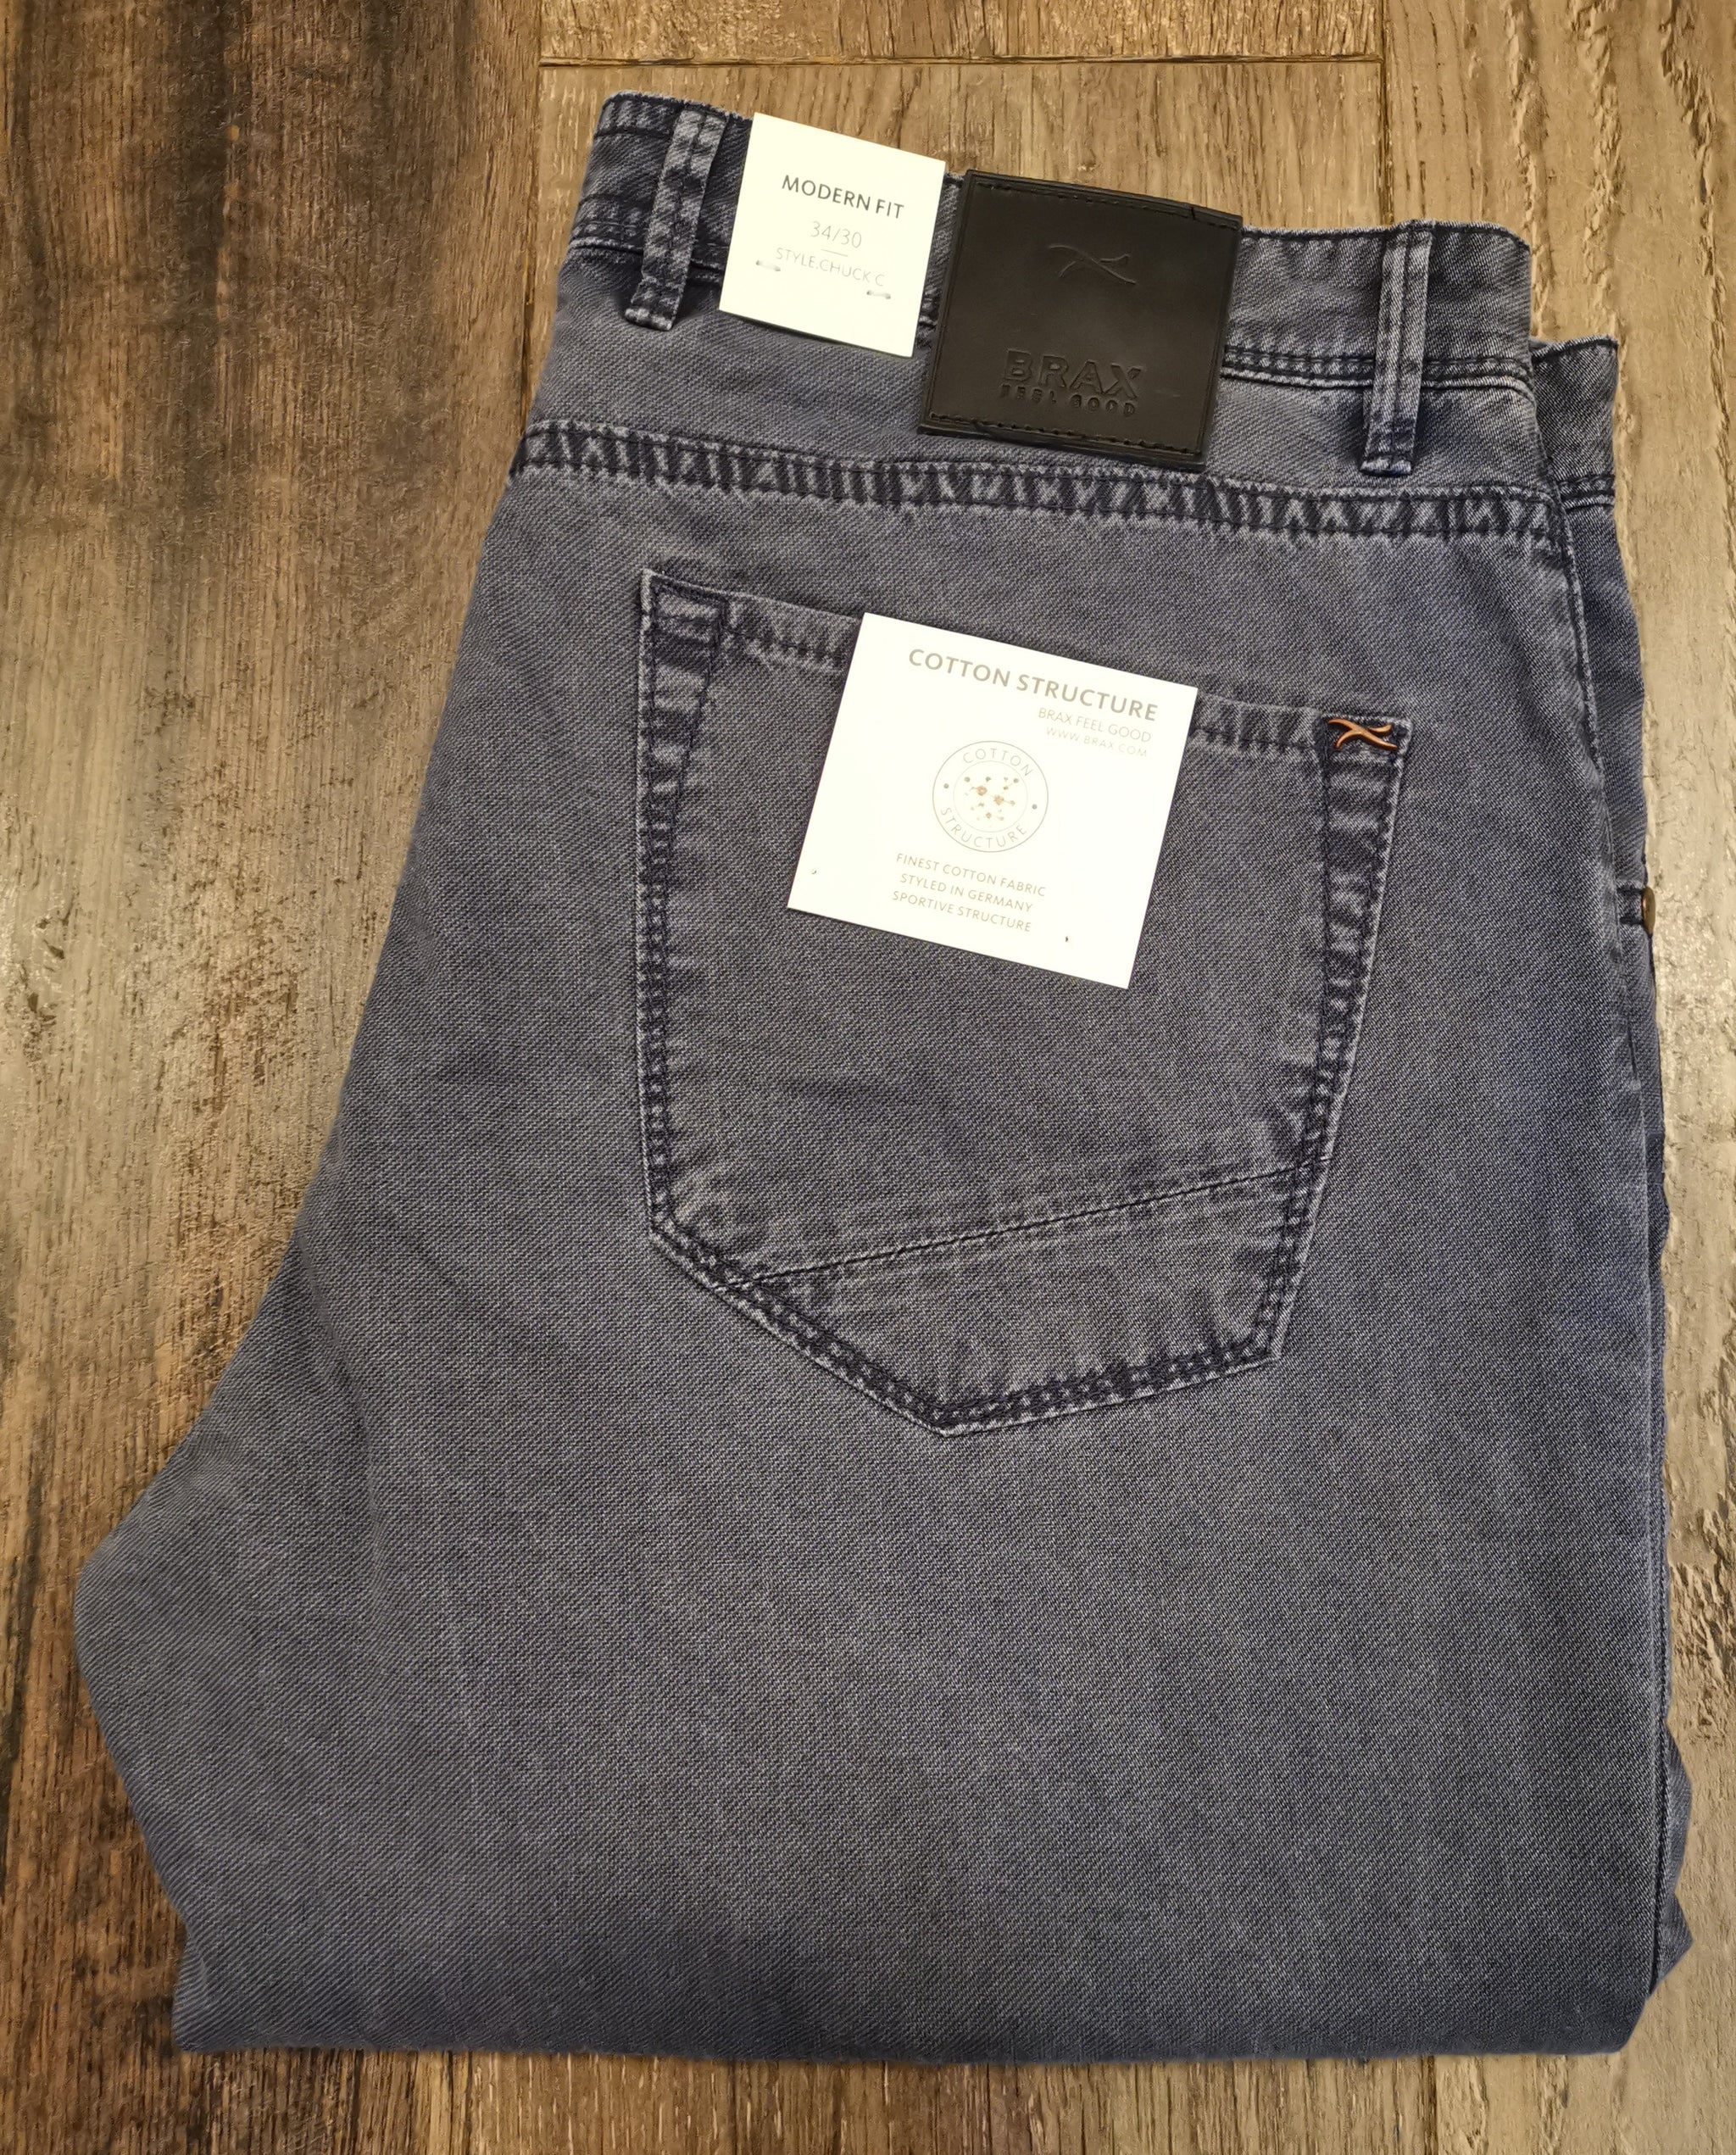 Brax Chuck Five Pocket Summer Cotton jeans